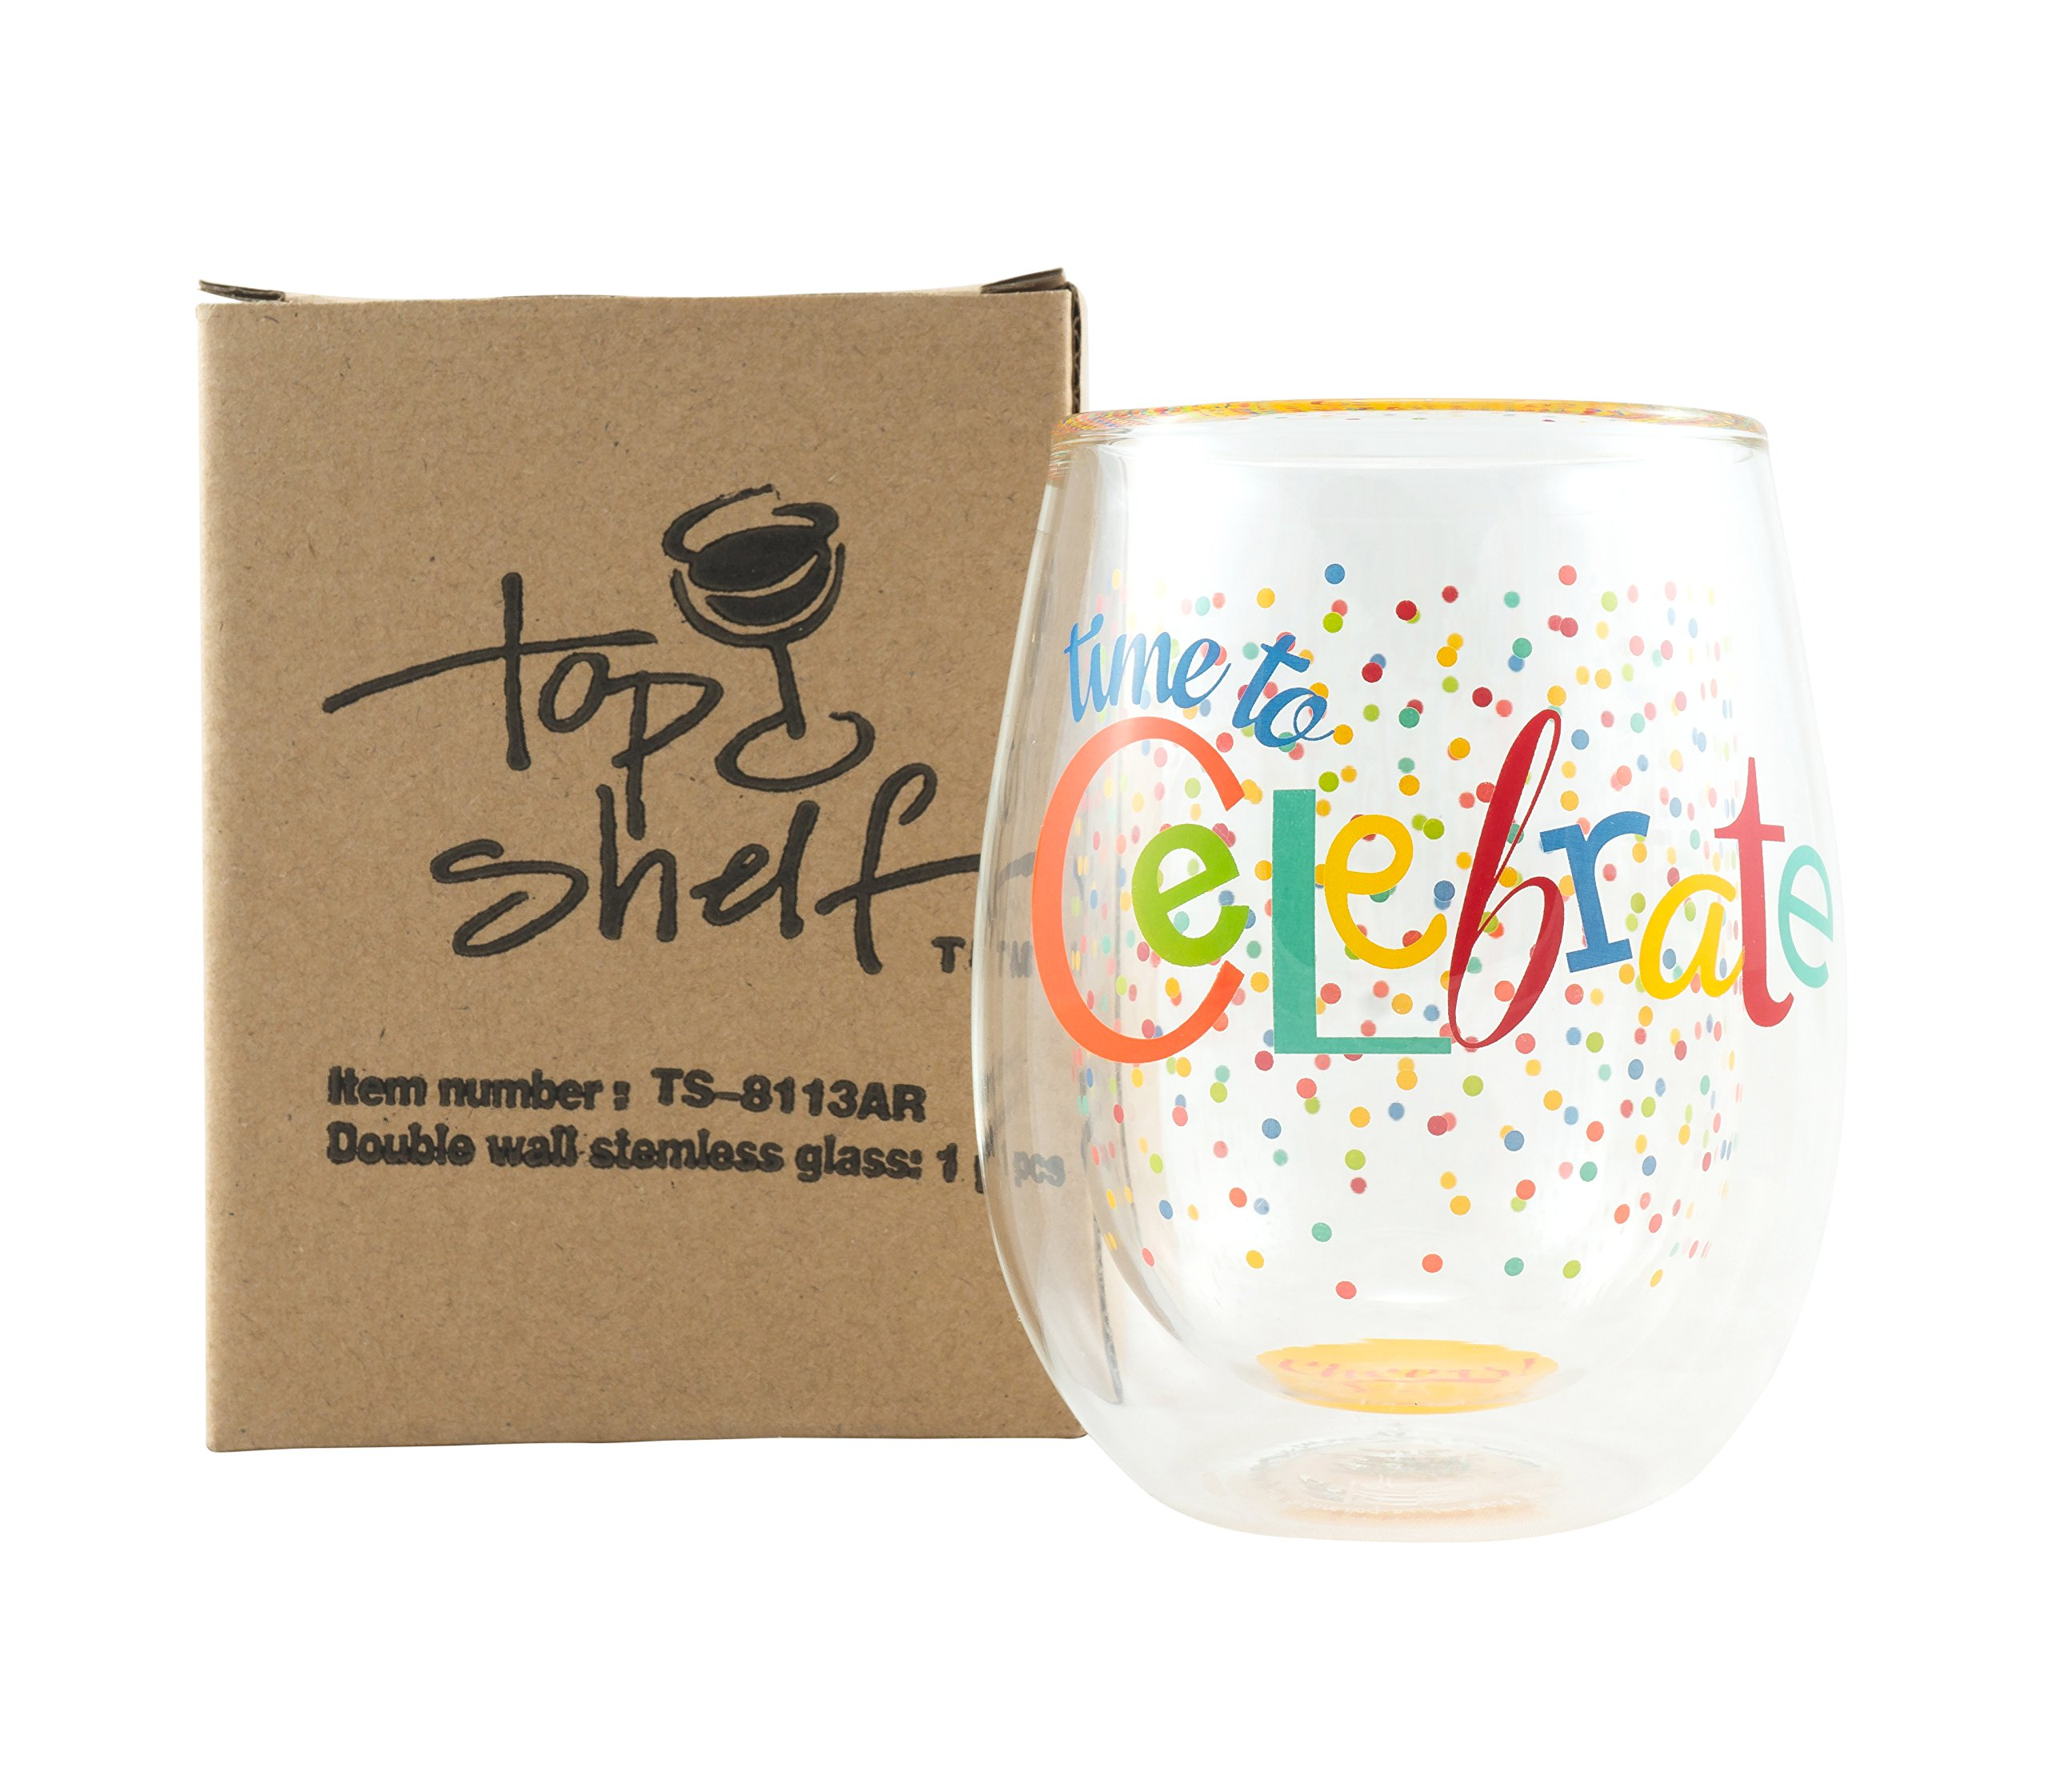 Top Shelf Double Wall Stemless''Time to Celebrate'' Wine Glass, Multicolor, Red or White Wine, Unique & Fun Gift Ideas for Men, Women, Friends, and Family, Memorable Gift for Birthdays